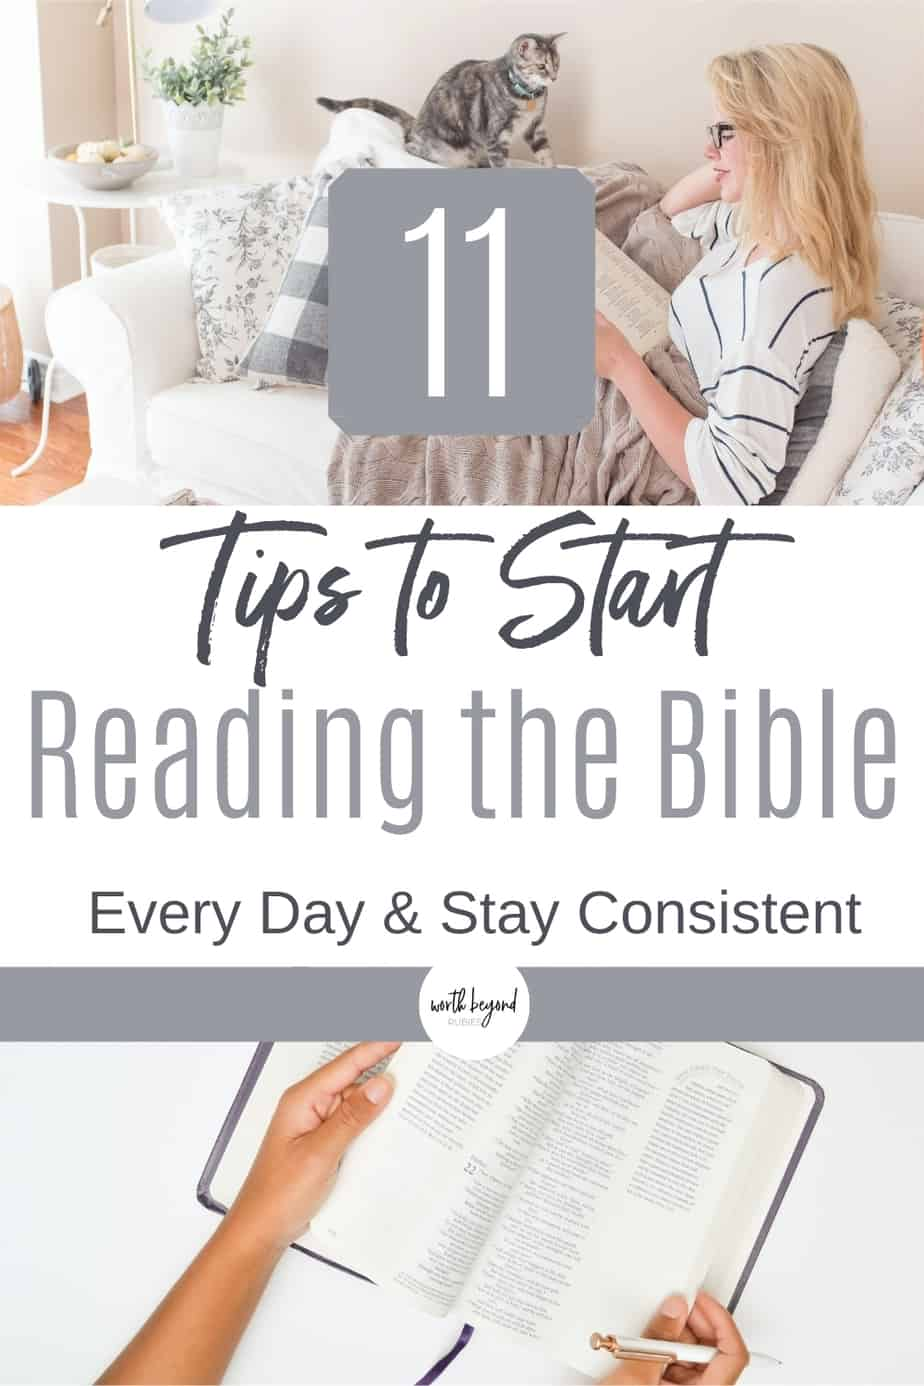 An image of a woman laying back on a couch reading the Bible and another of a Bible and text overlay that says 11 Tips to Start Reading the Bible Every Day & Stay Consistent